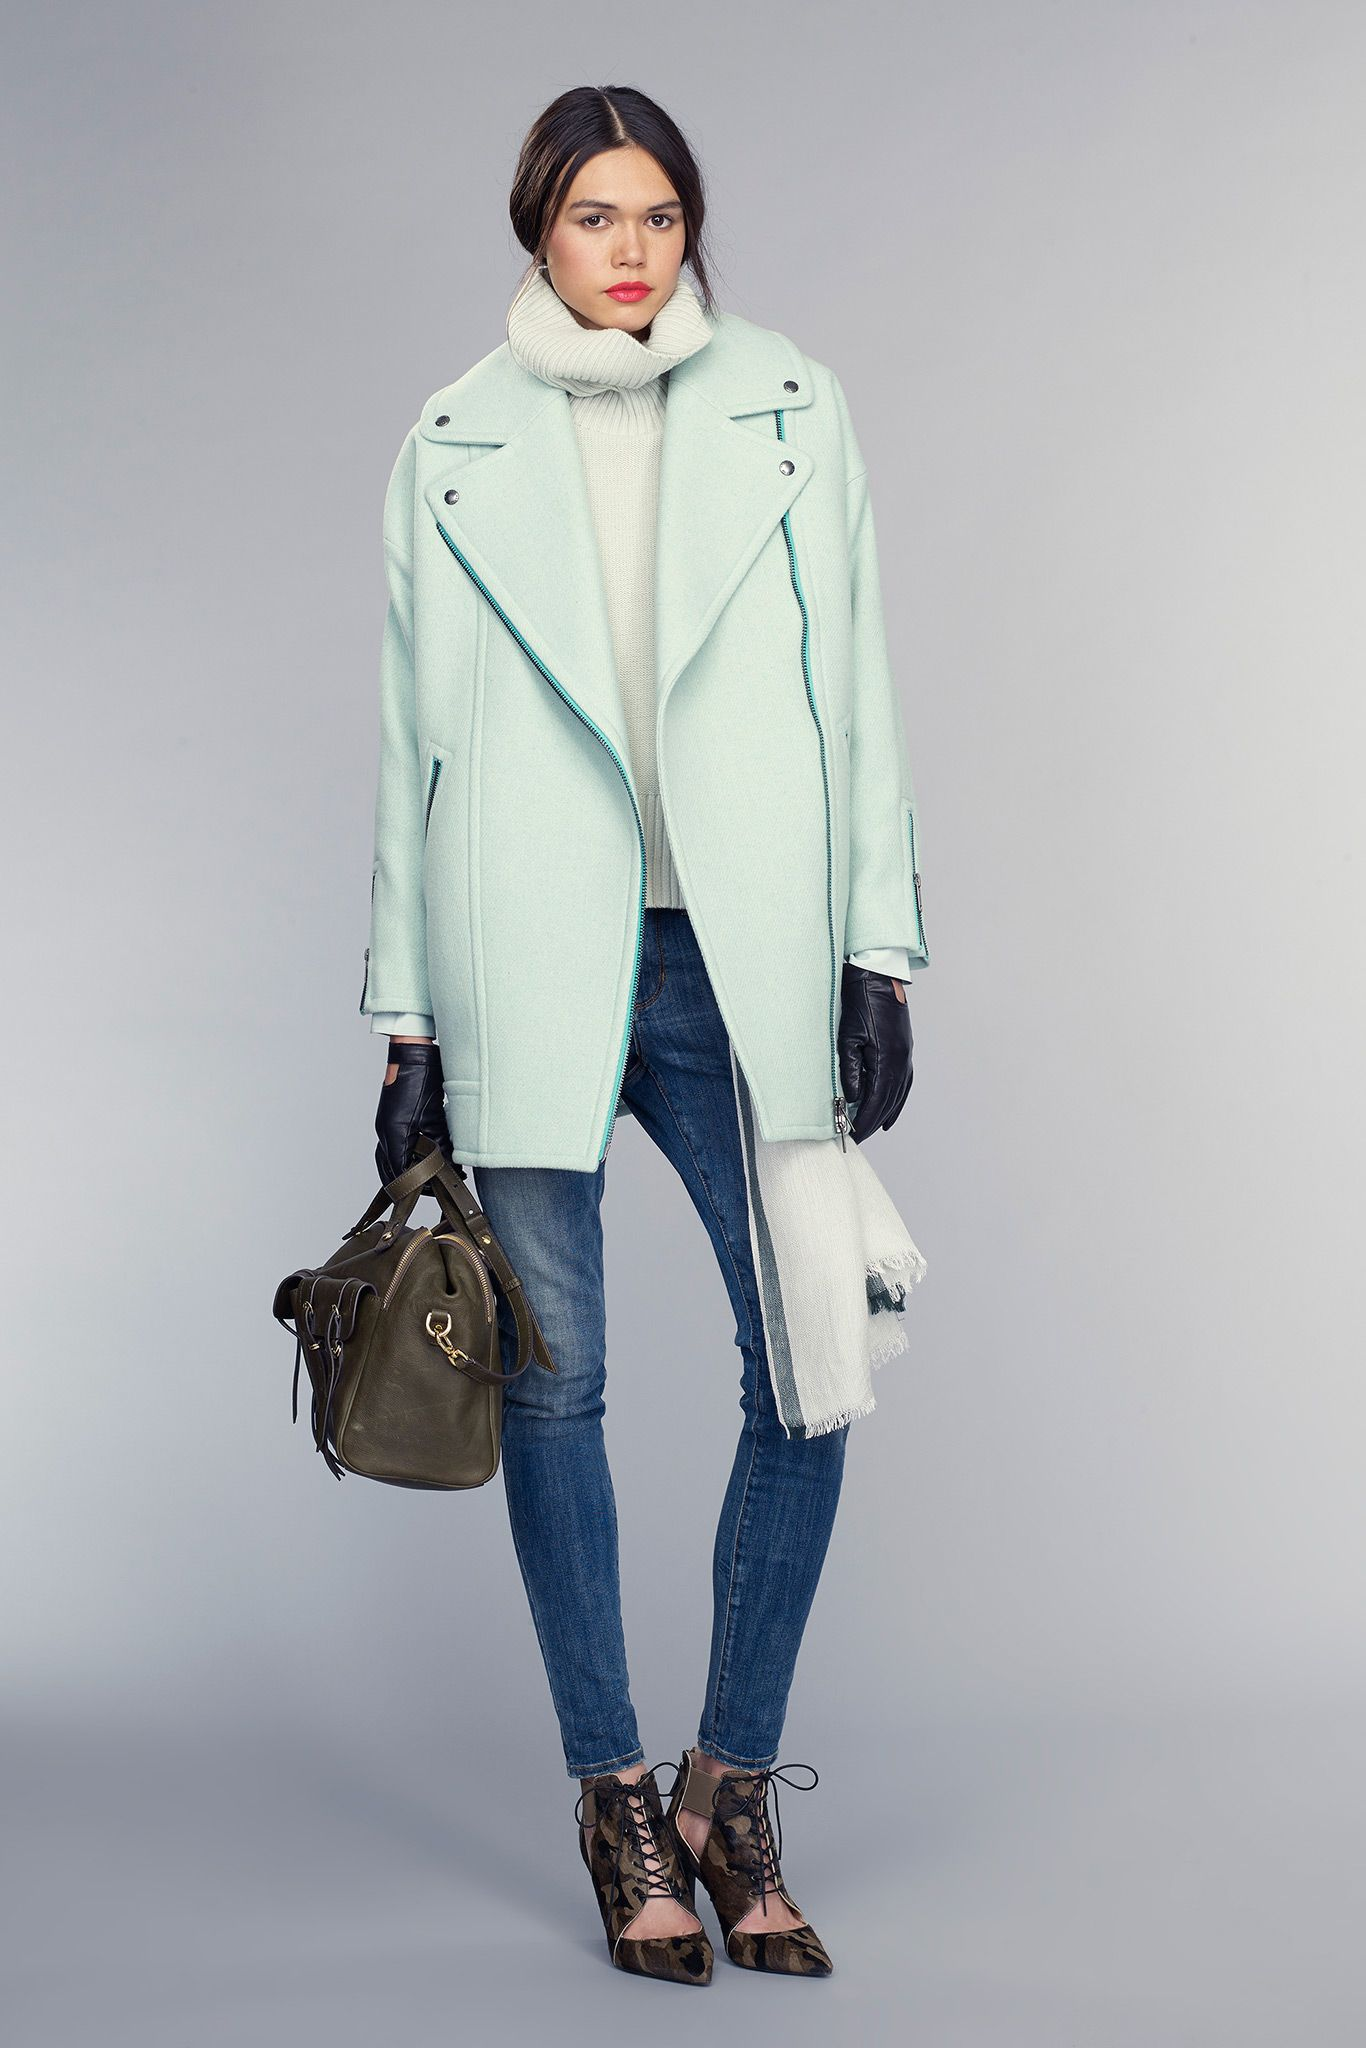 89772ffd Banana Republic - Fall 2015 Ready-to-Wear - Look 15 of 38 | From the ...